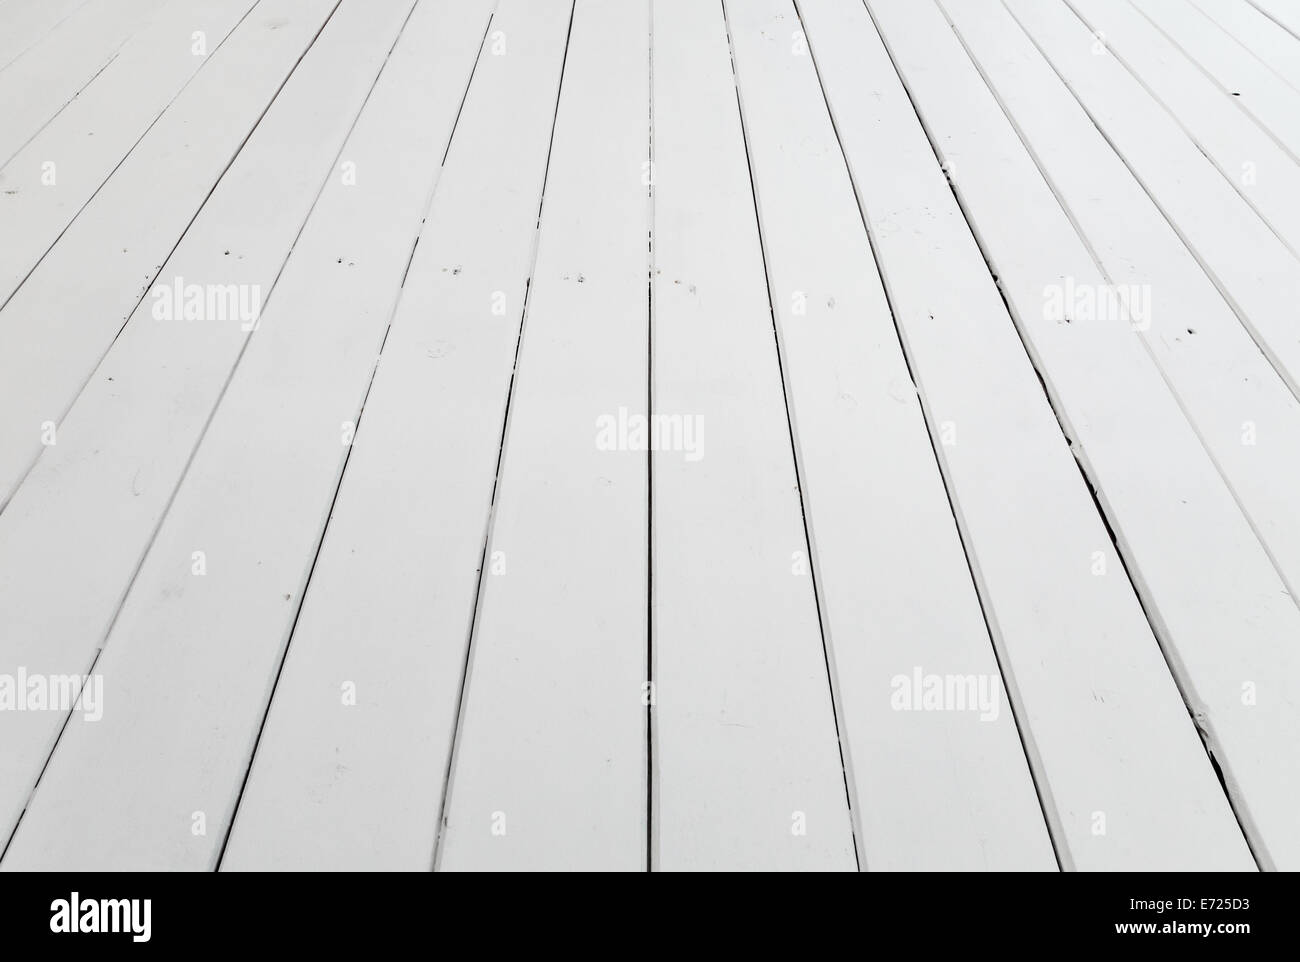 stock photo white wooden floor background with perspective